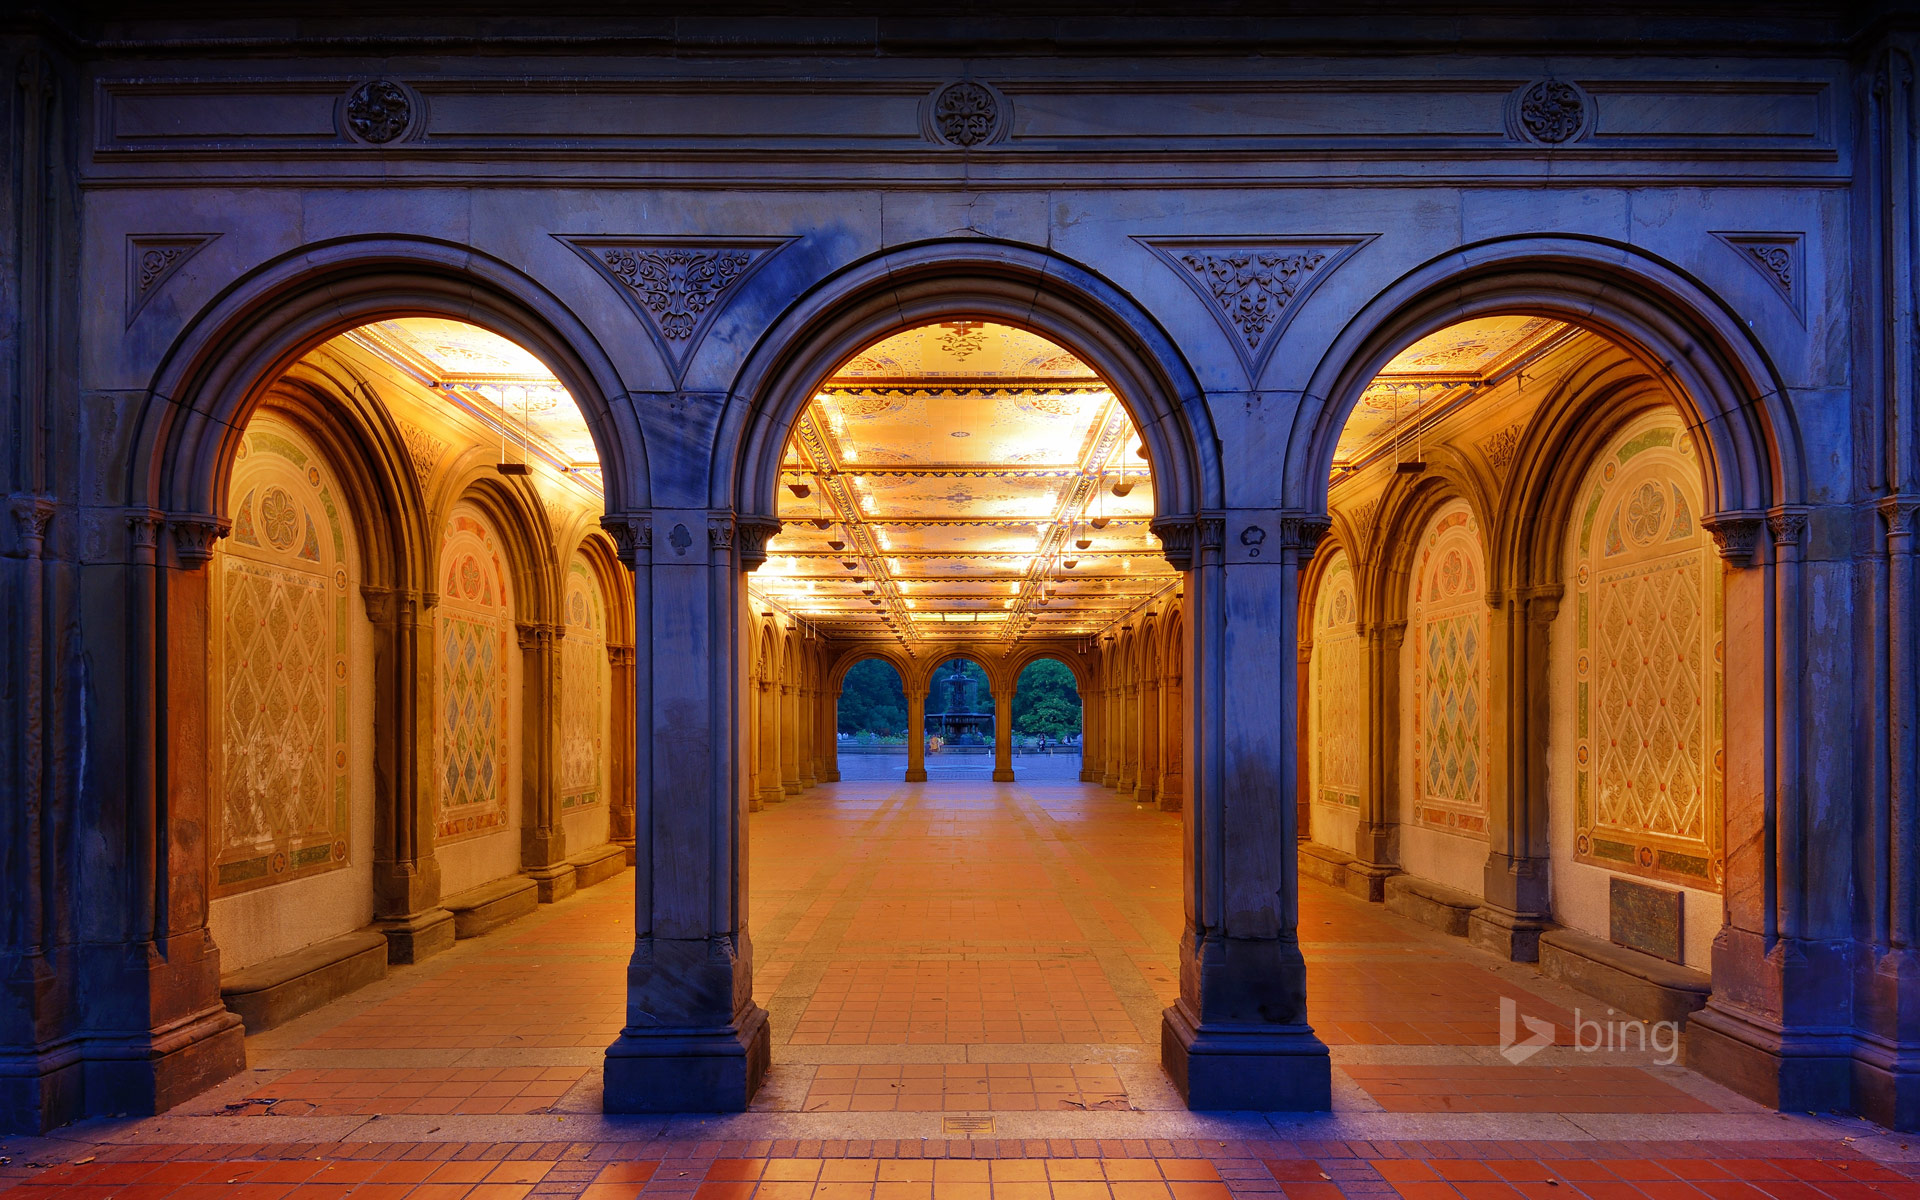 Bethesda Terrace's lower passage in Central Park, New York City